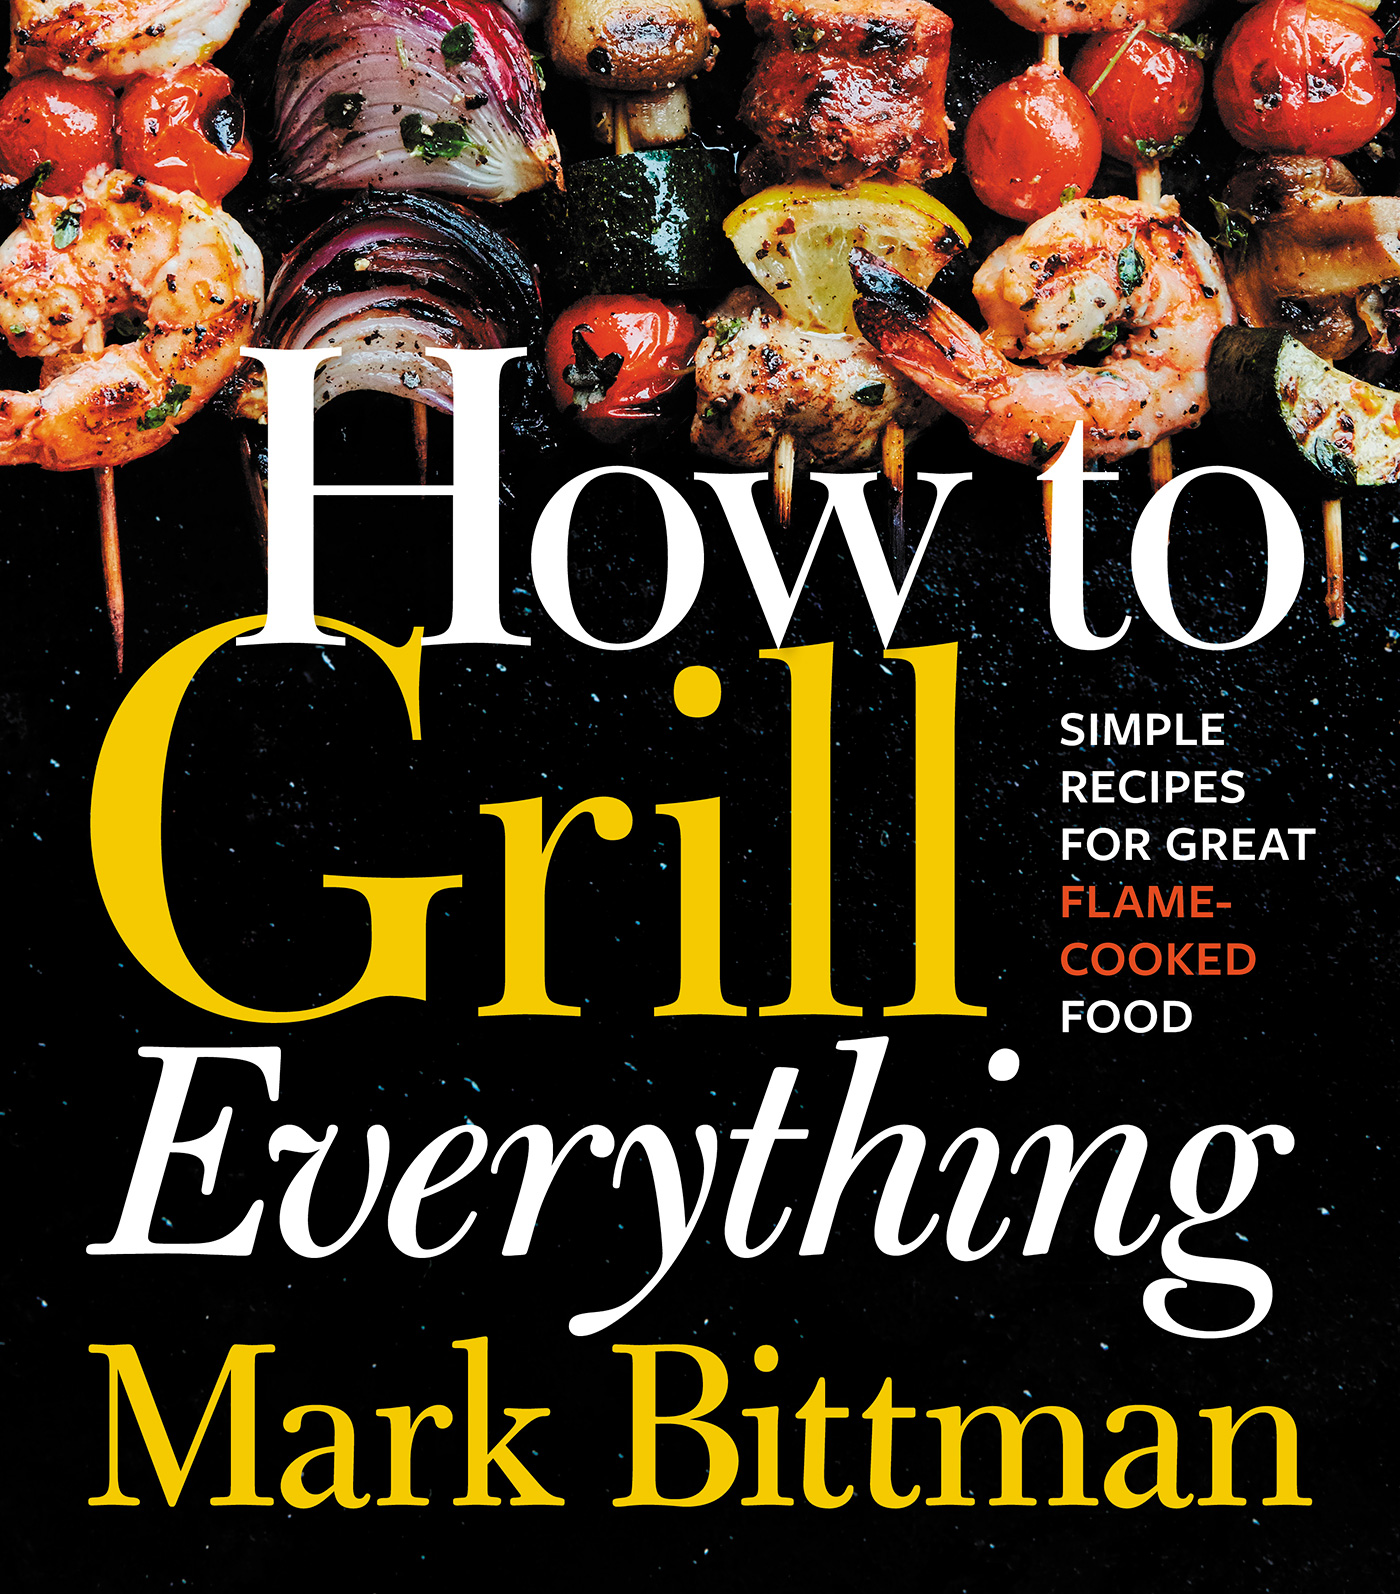 How-to-Grill-Everything_Bittman_9780544790308_hres